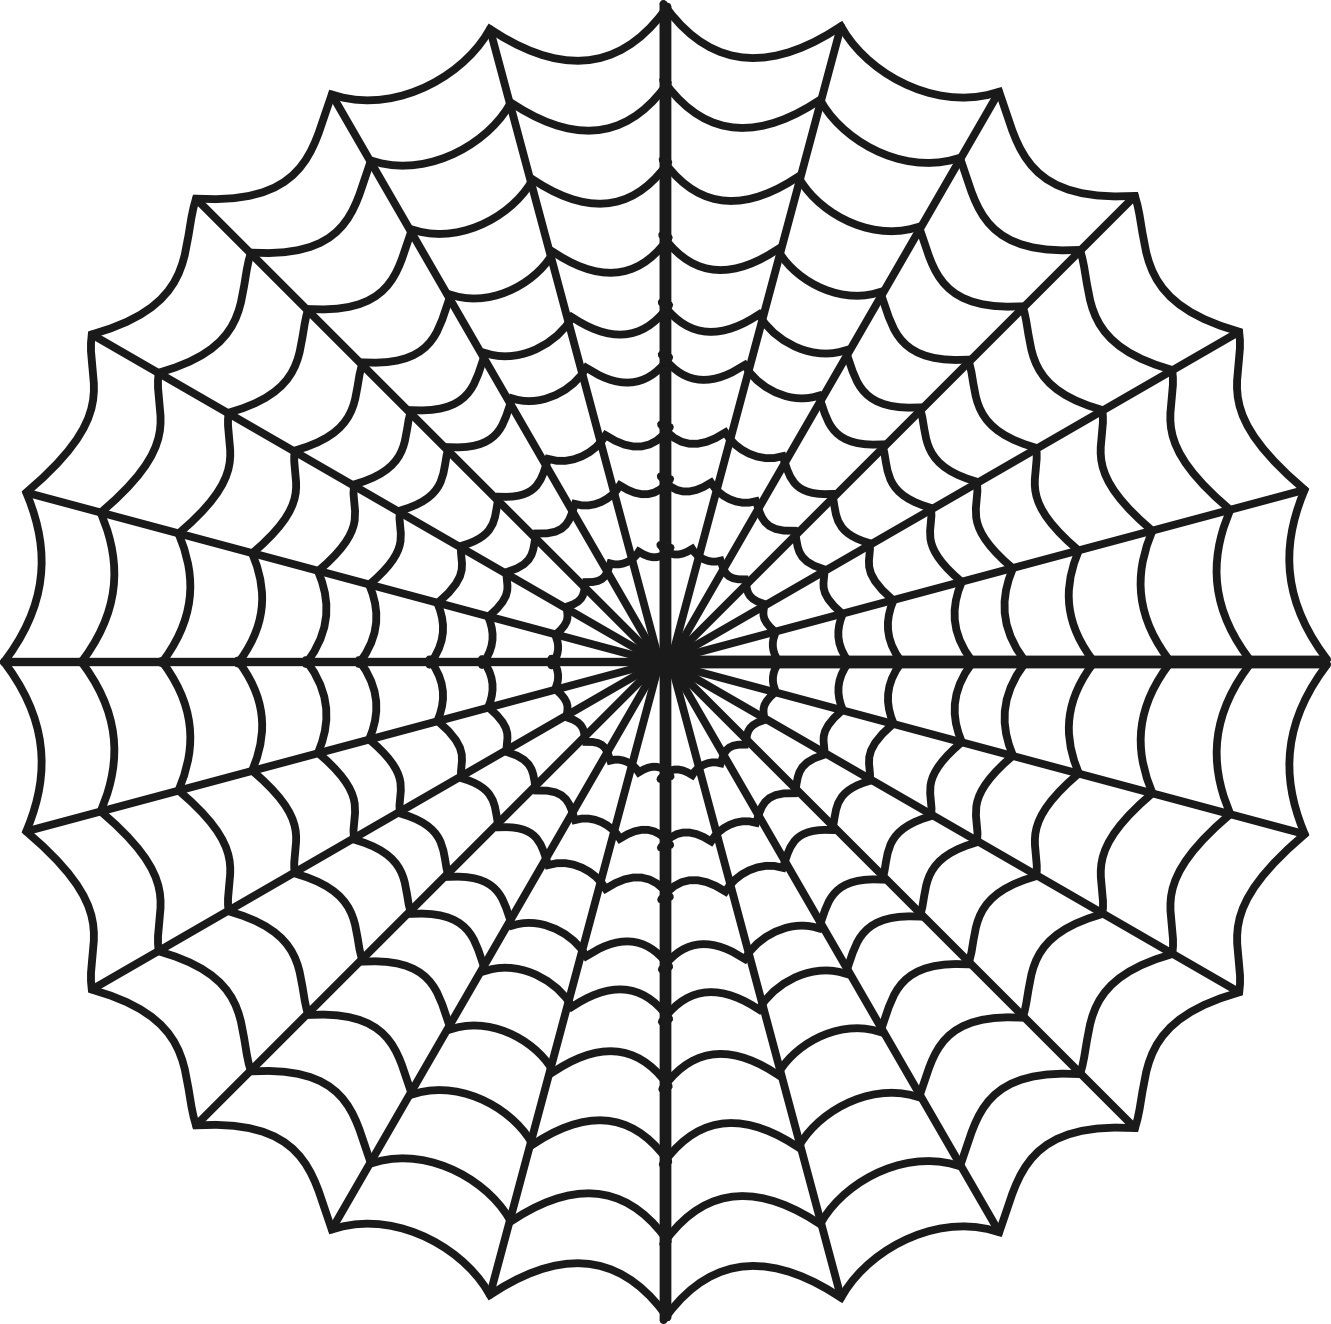 Free Printable Spider Web Coloring Pages For Kids Inside